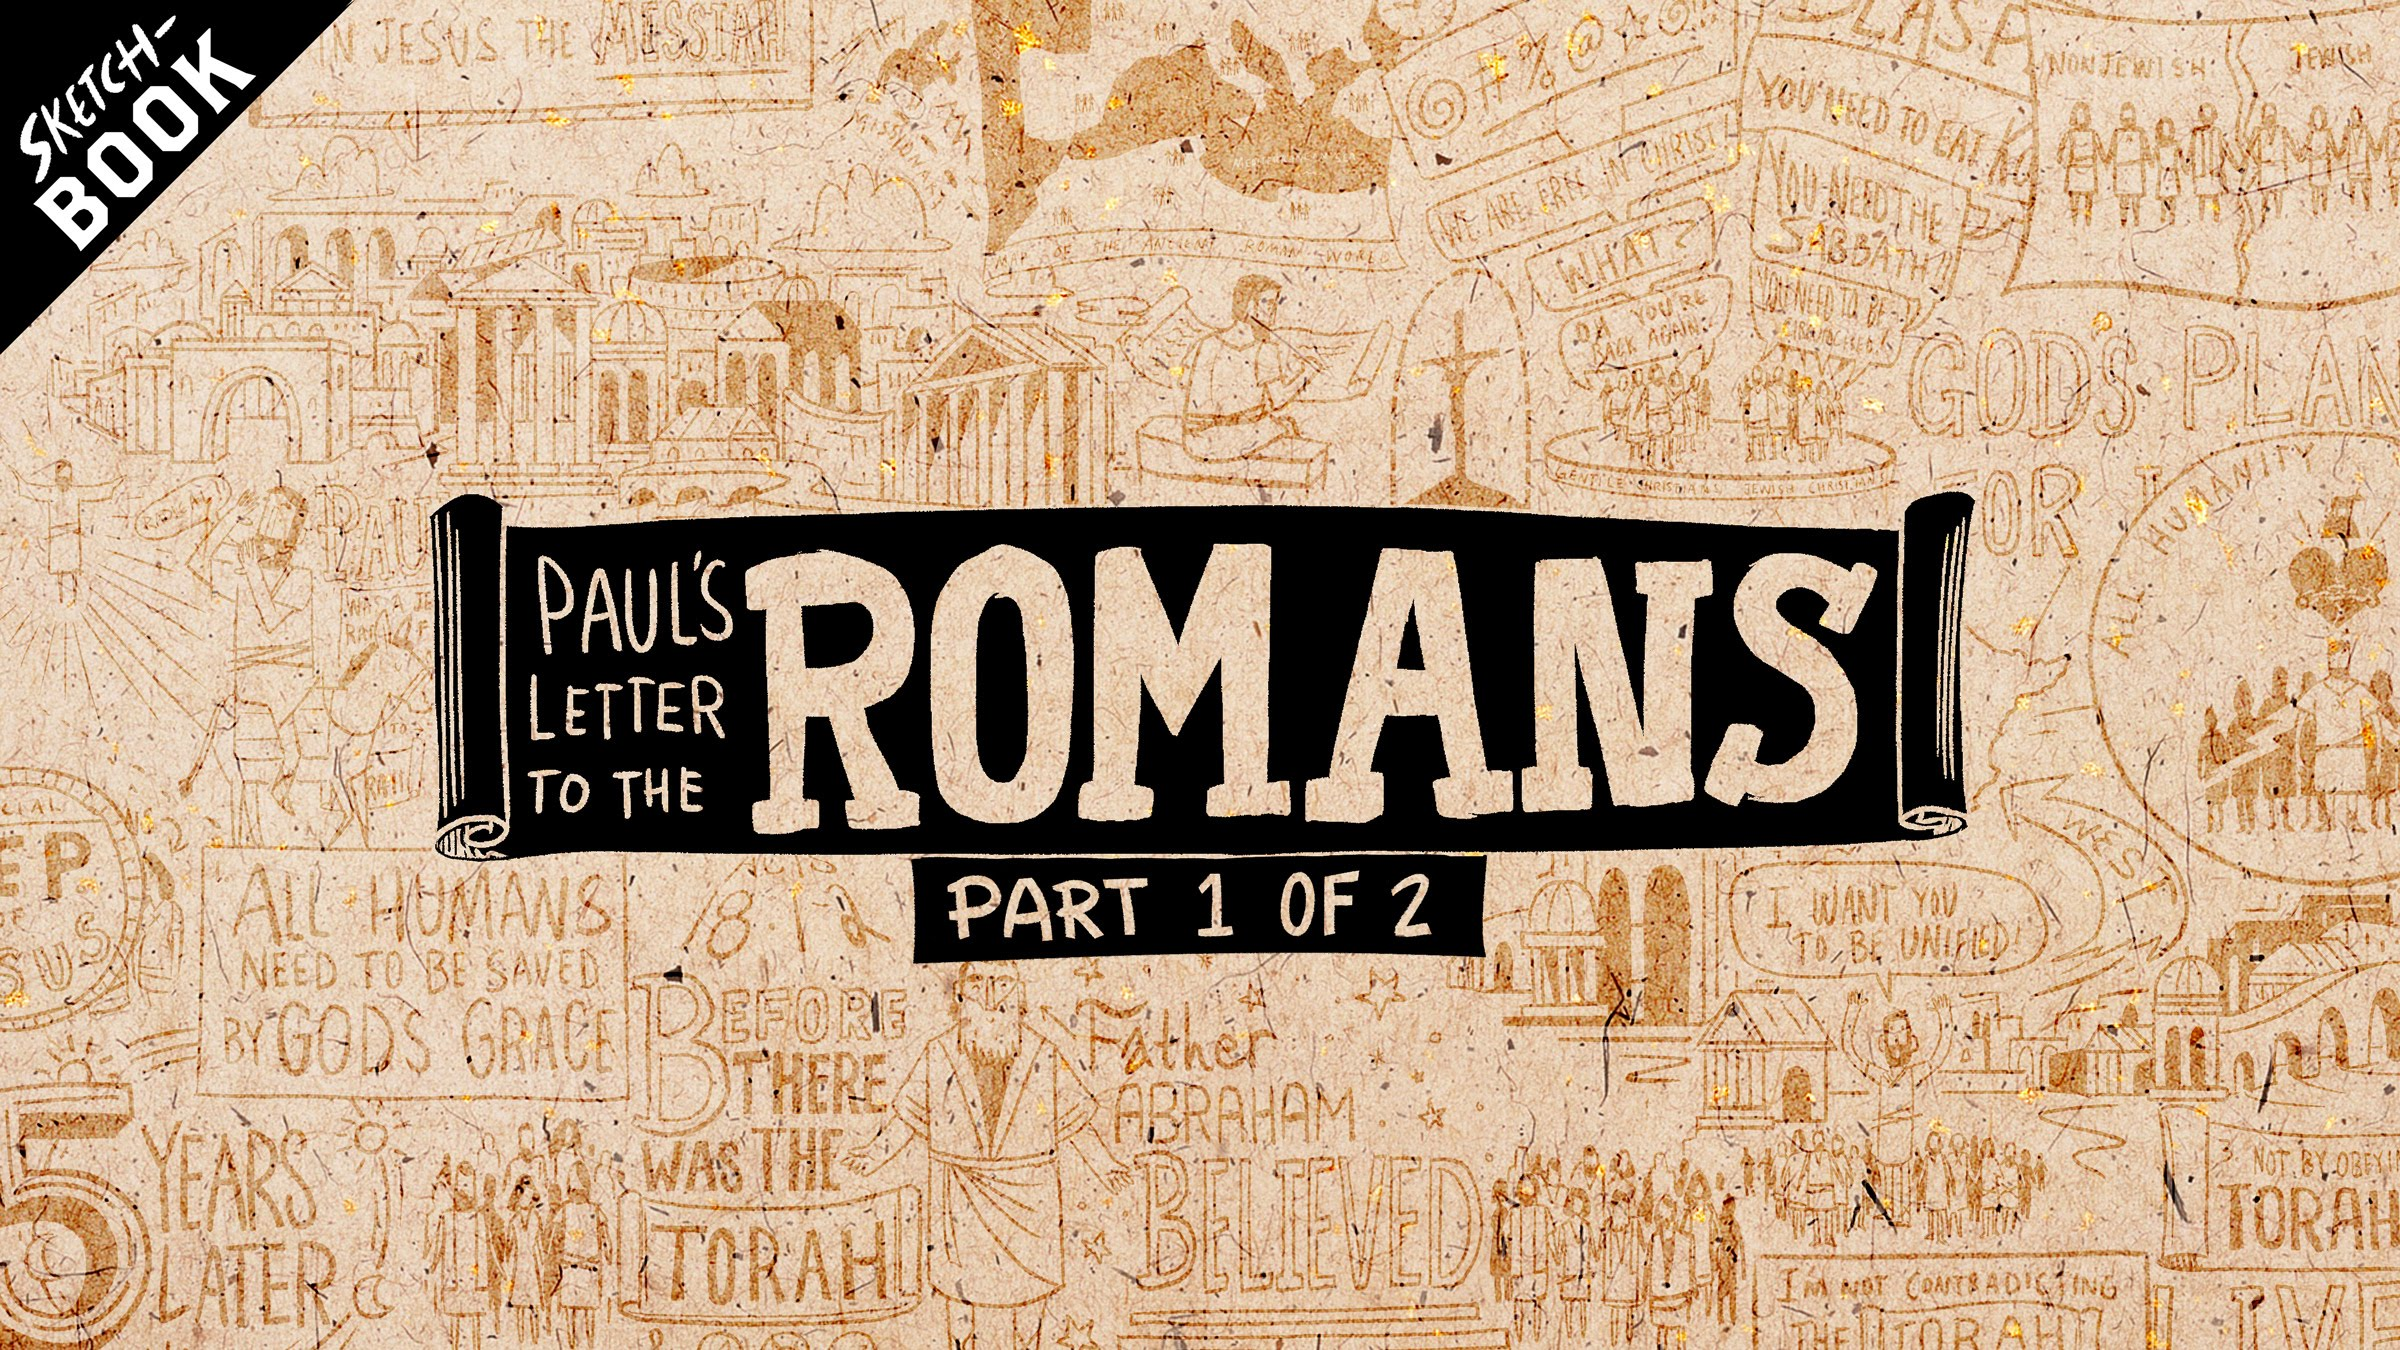 Paul's Letter to the Romans, Chapters 1-4